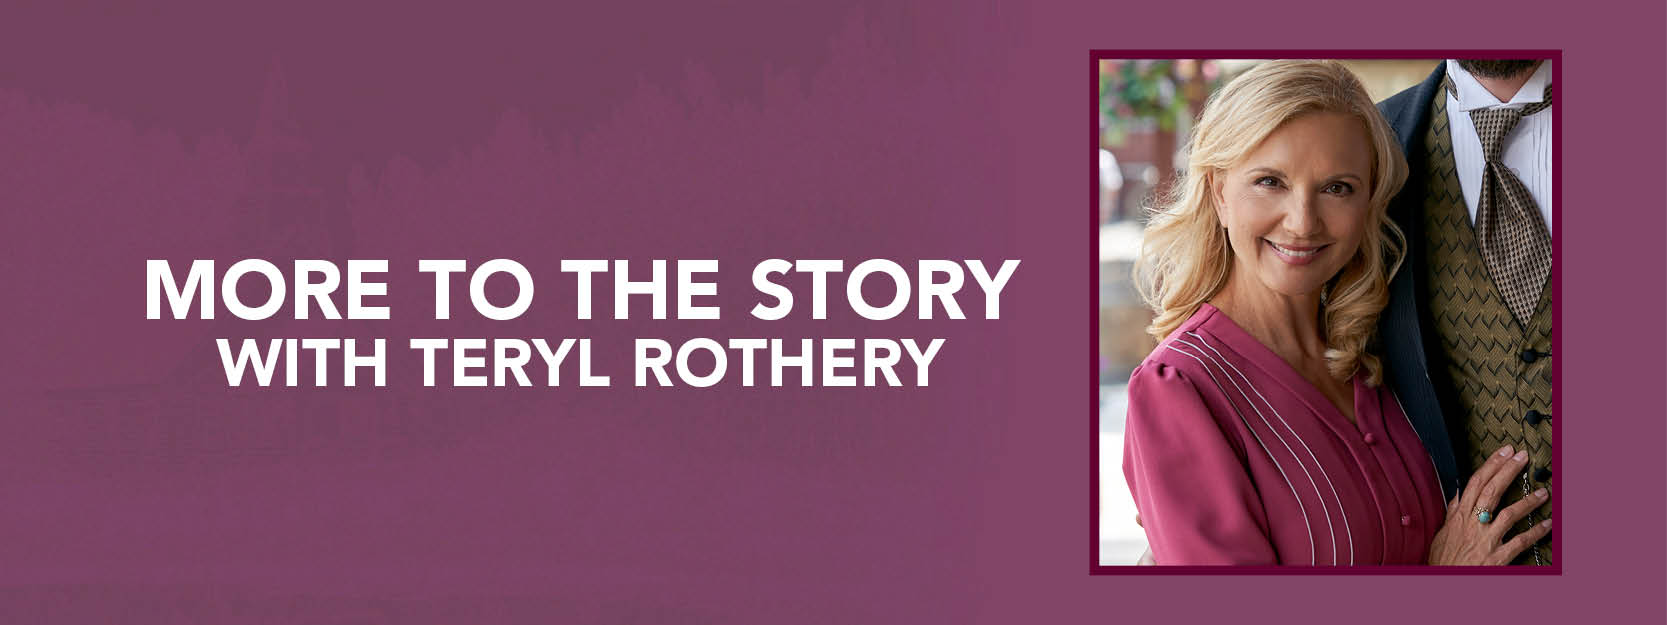 More to the Story with Teryl Rothery